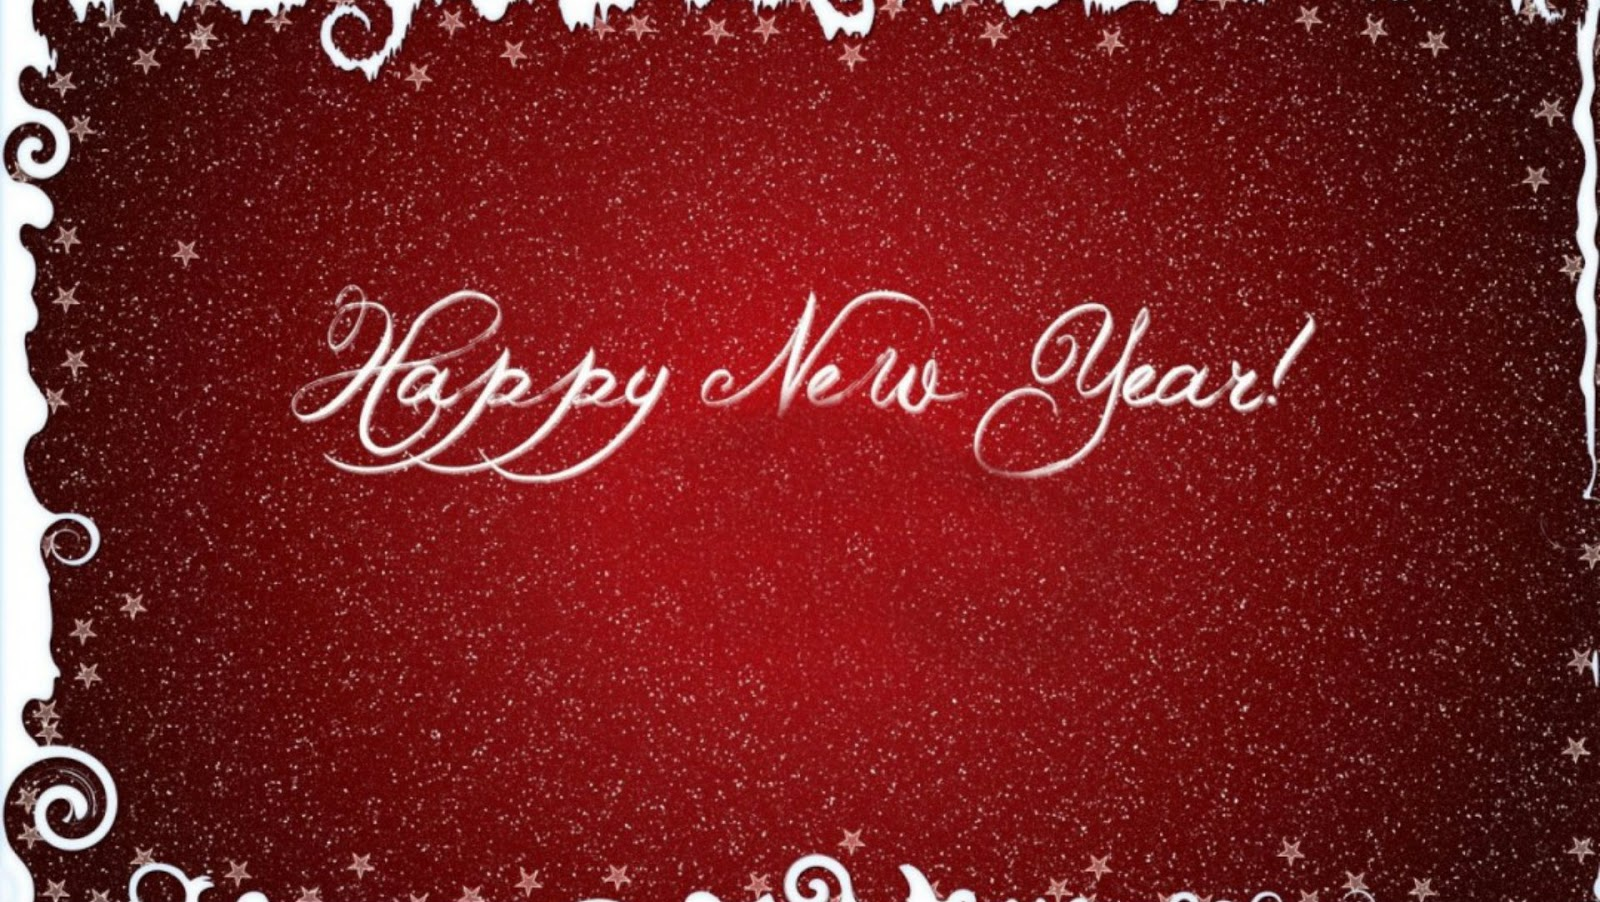 New Year 2016 Wallpapers Wishes New Year Whatsapp Status In 2016